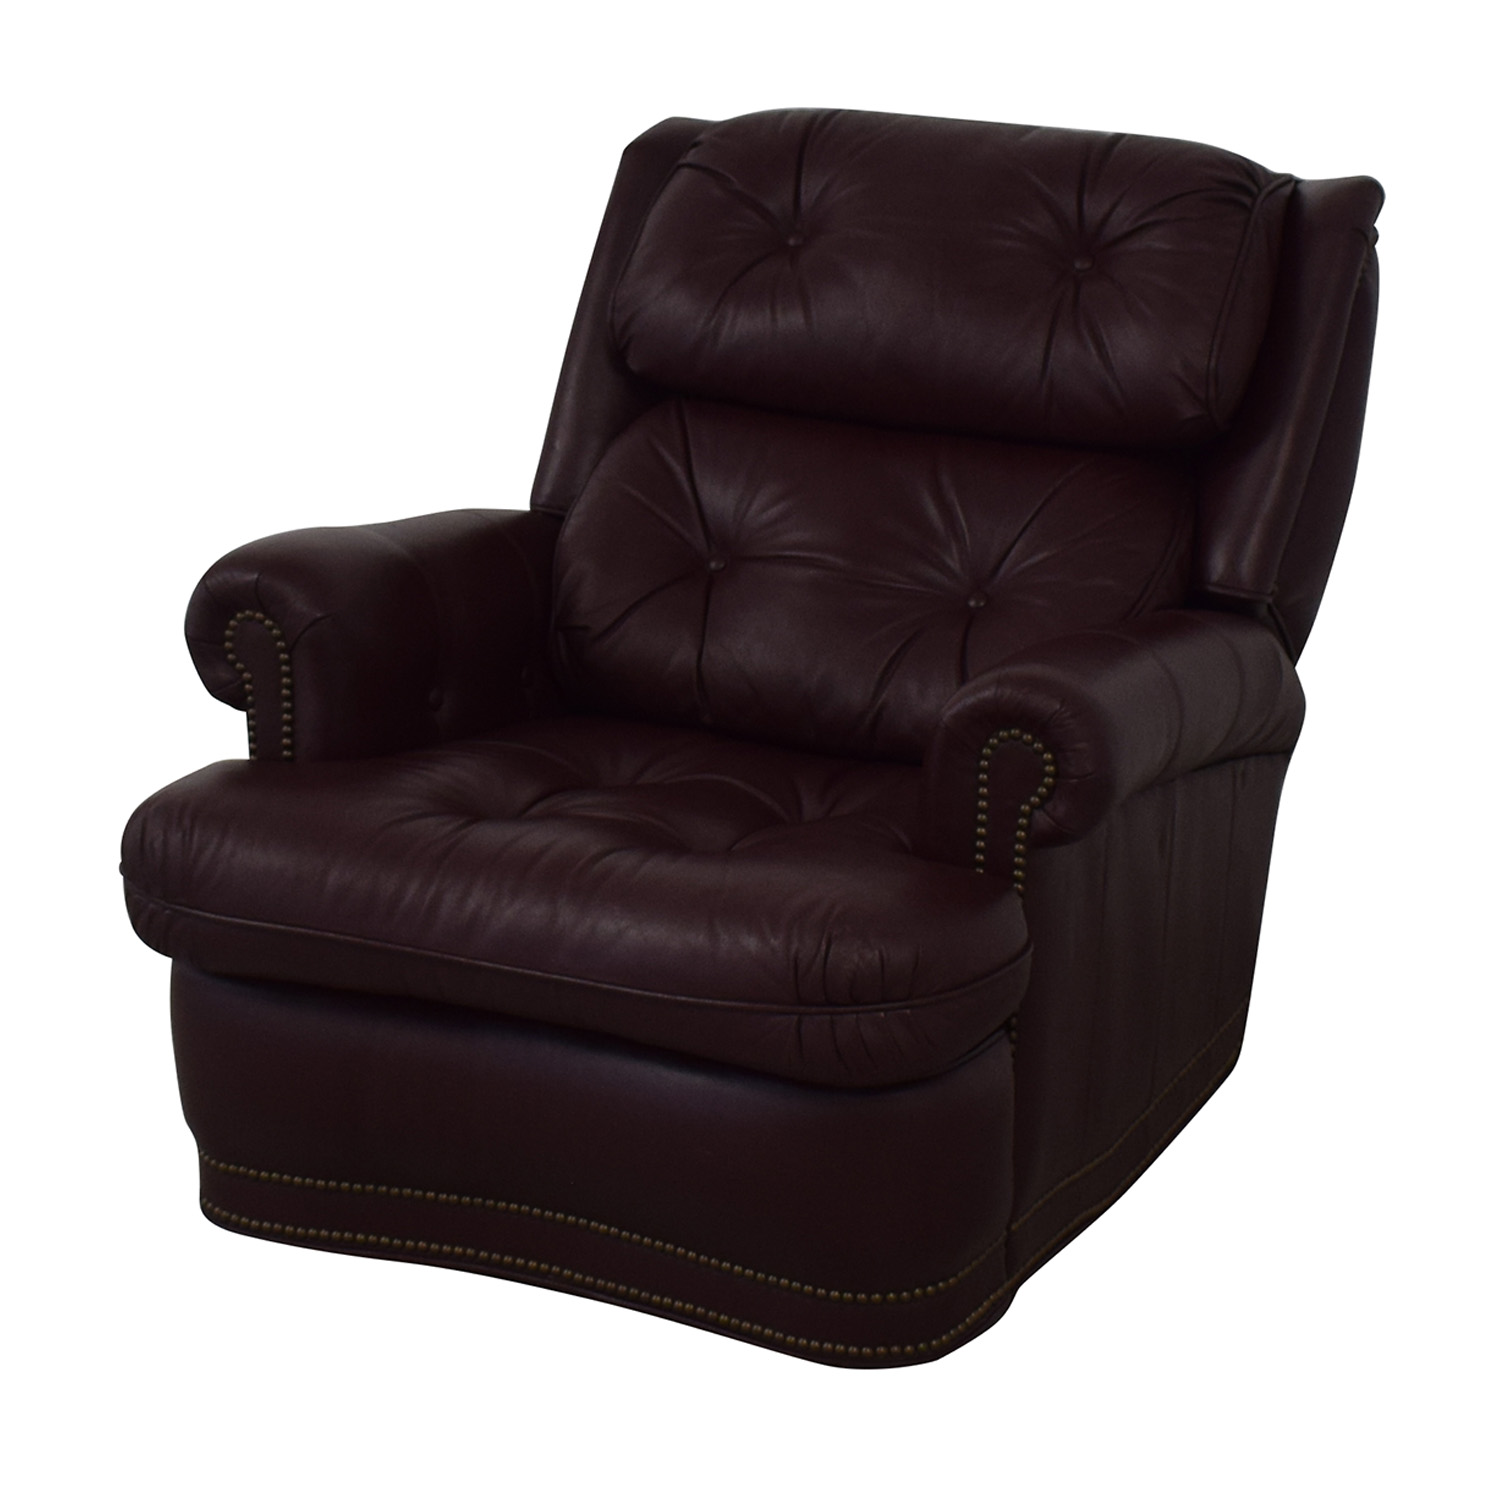 buy Distinctions Furniture Leather Burgundy Recliner Distinctions Furniture